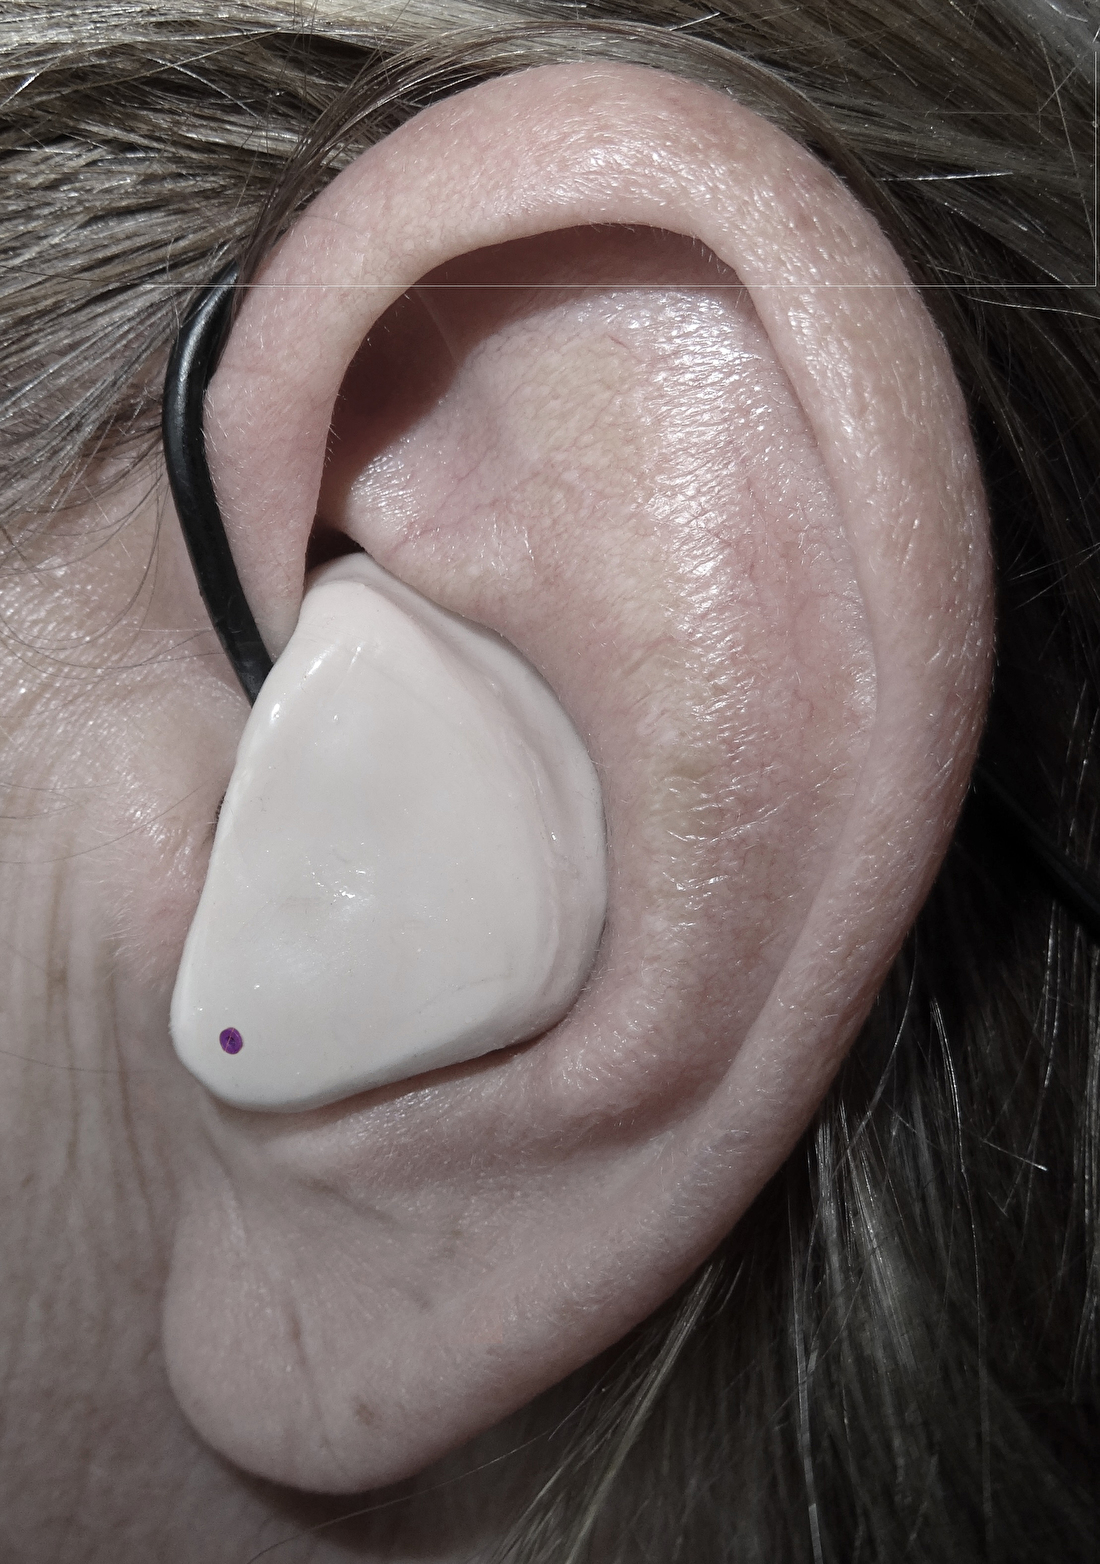 Eartech-in ear-appingedam